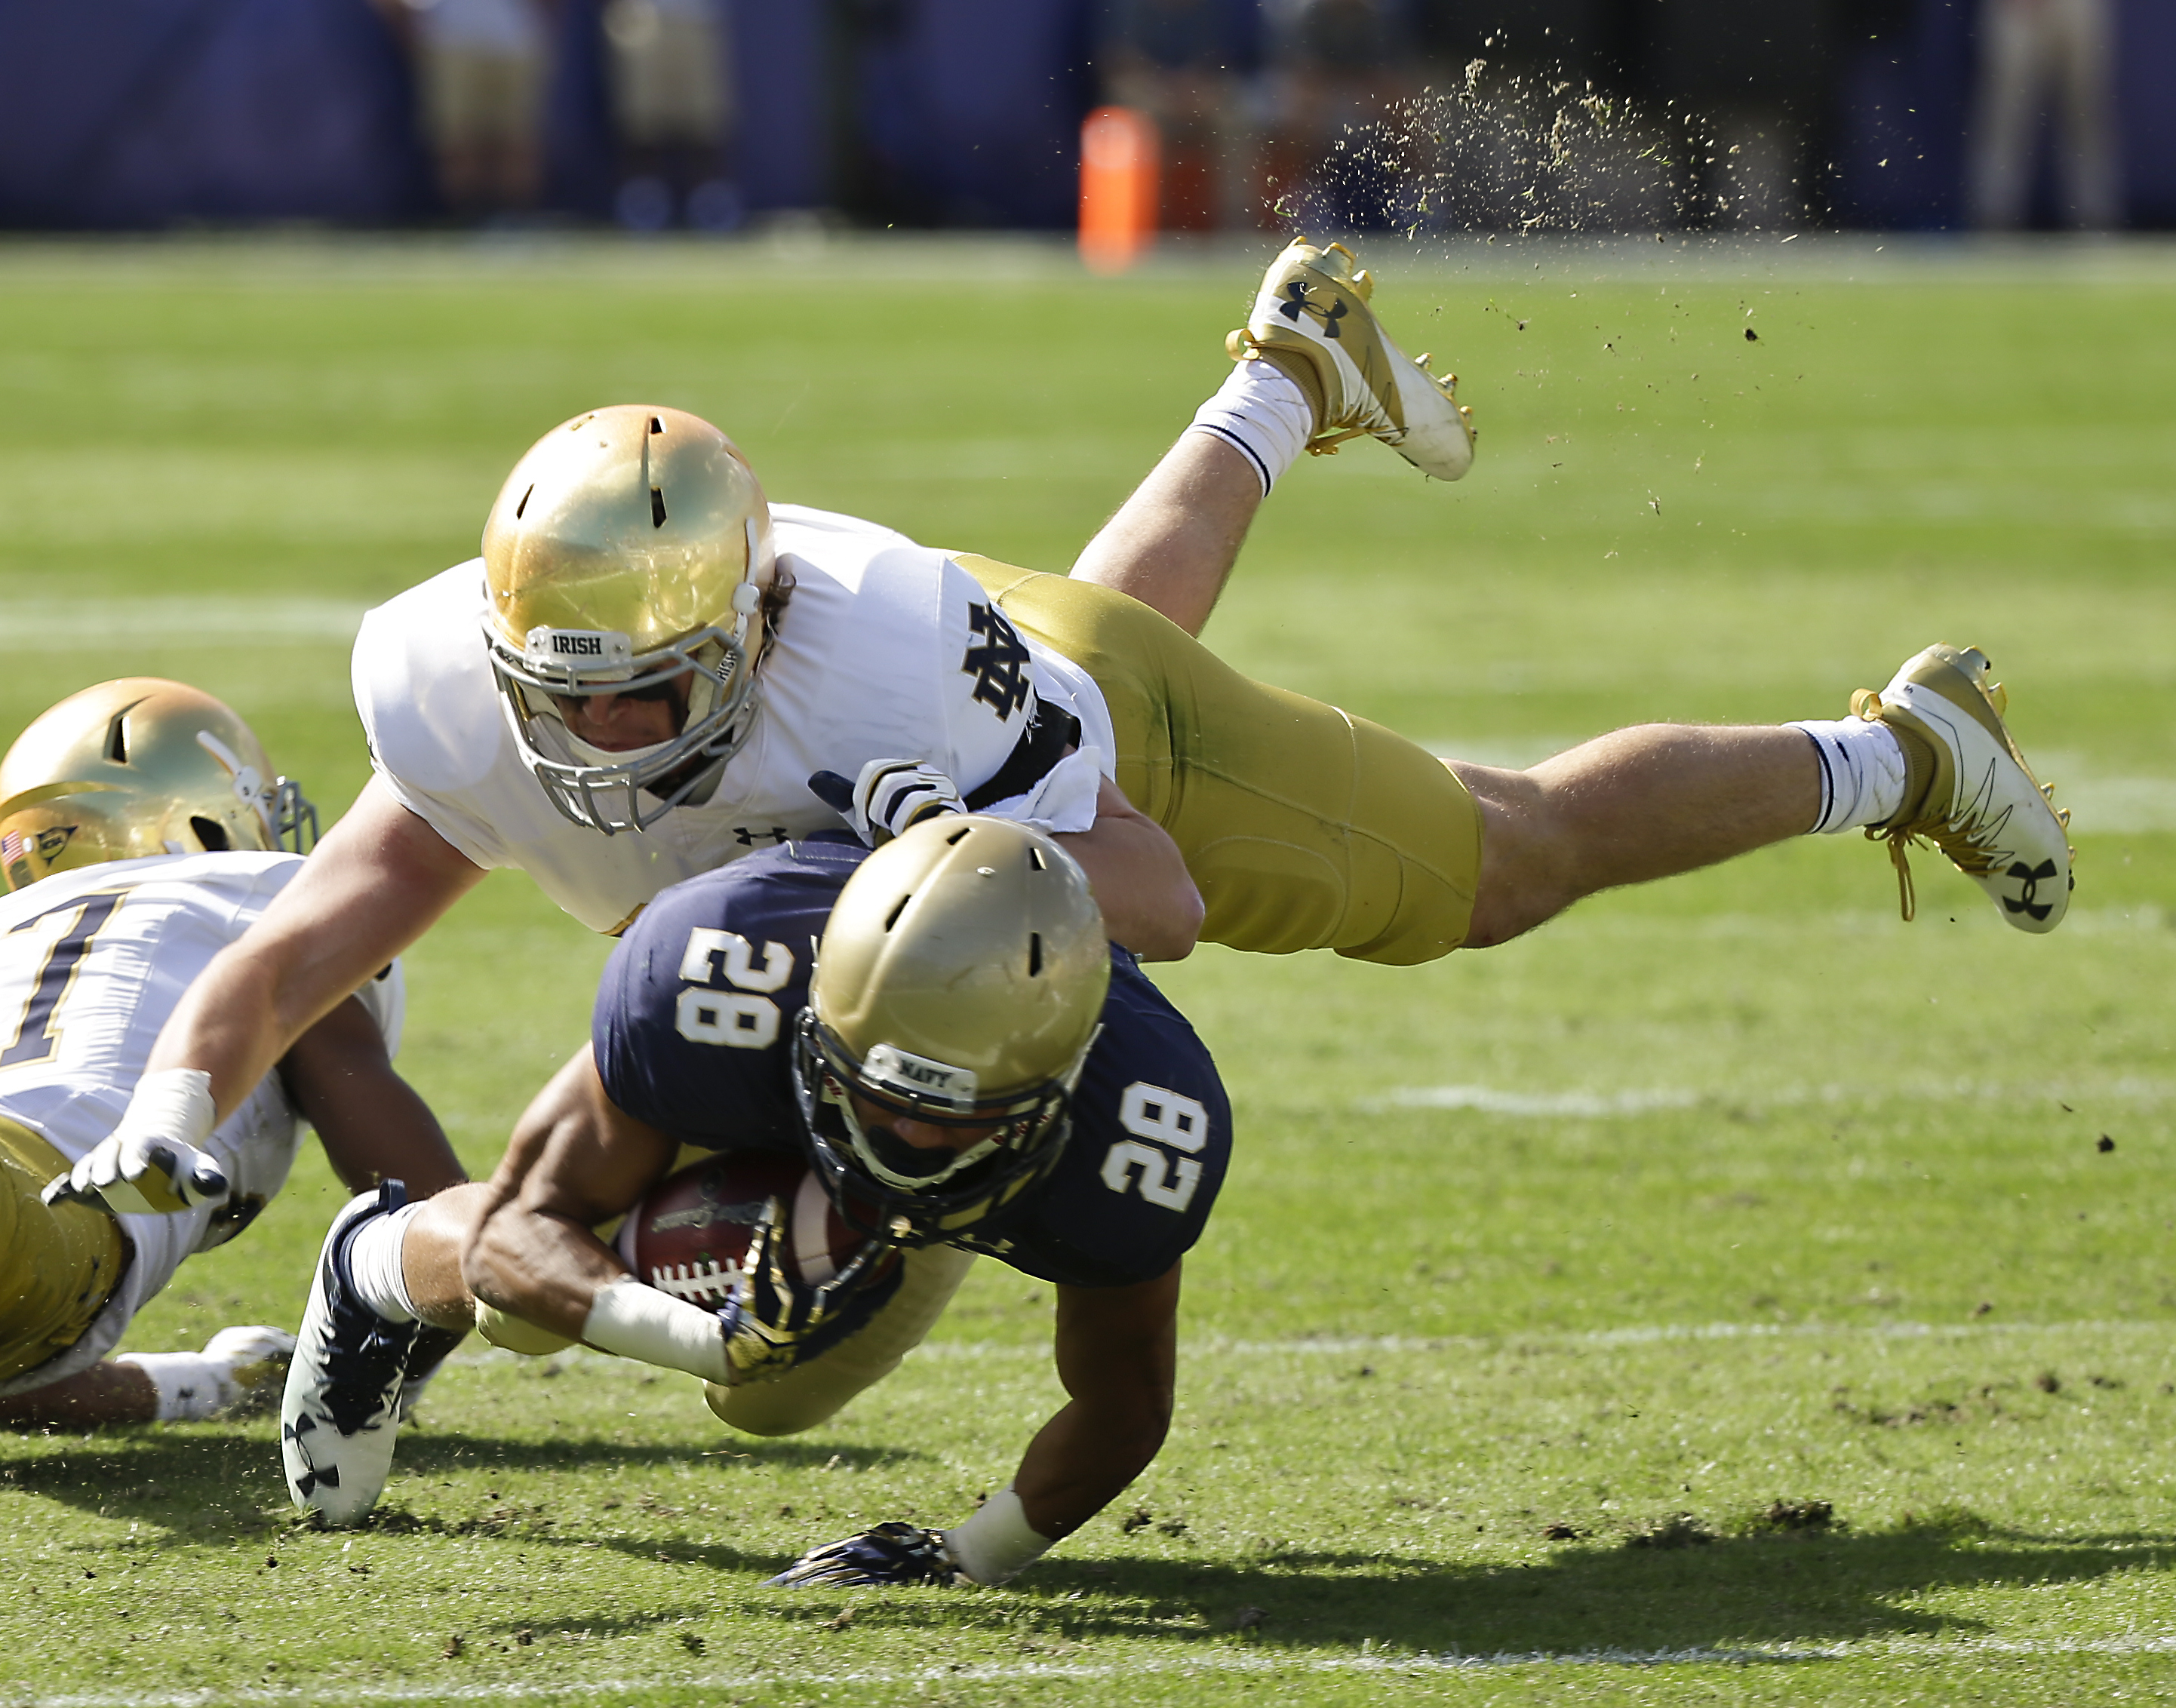 FILE - In this Nov. 5, 2016, file photo, Notre Dame linebacker Greer Martini, top, brings down Navy running back Dishan Romine (28) after a short gain during the first half of an NCAA college football game in Jacksonville, Fla. The 6-foot-3, 240-pound jun